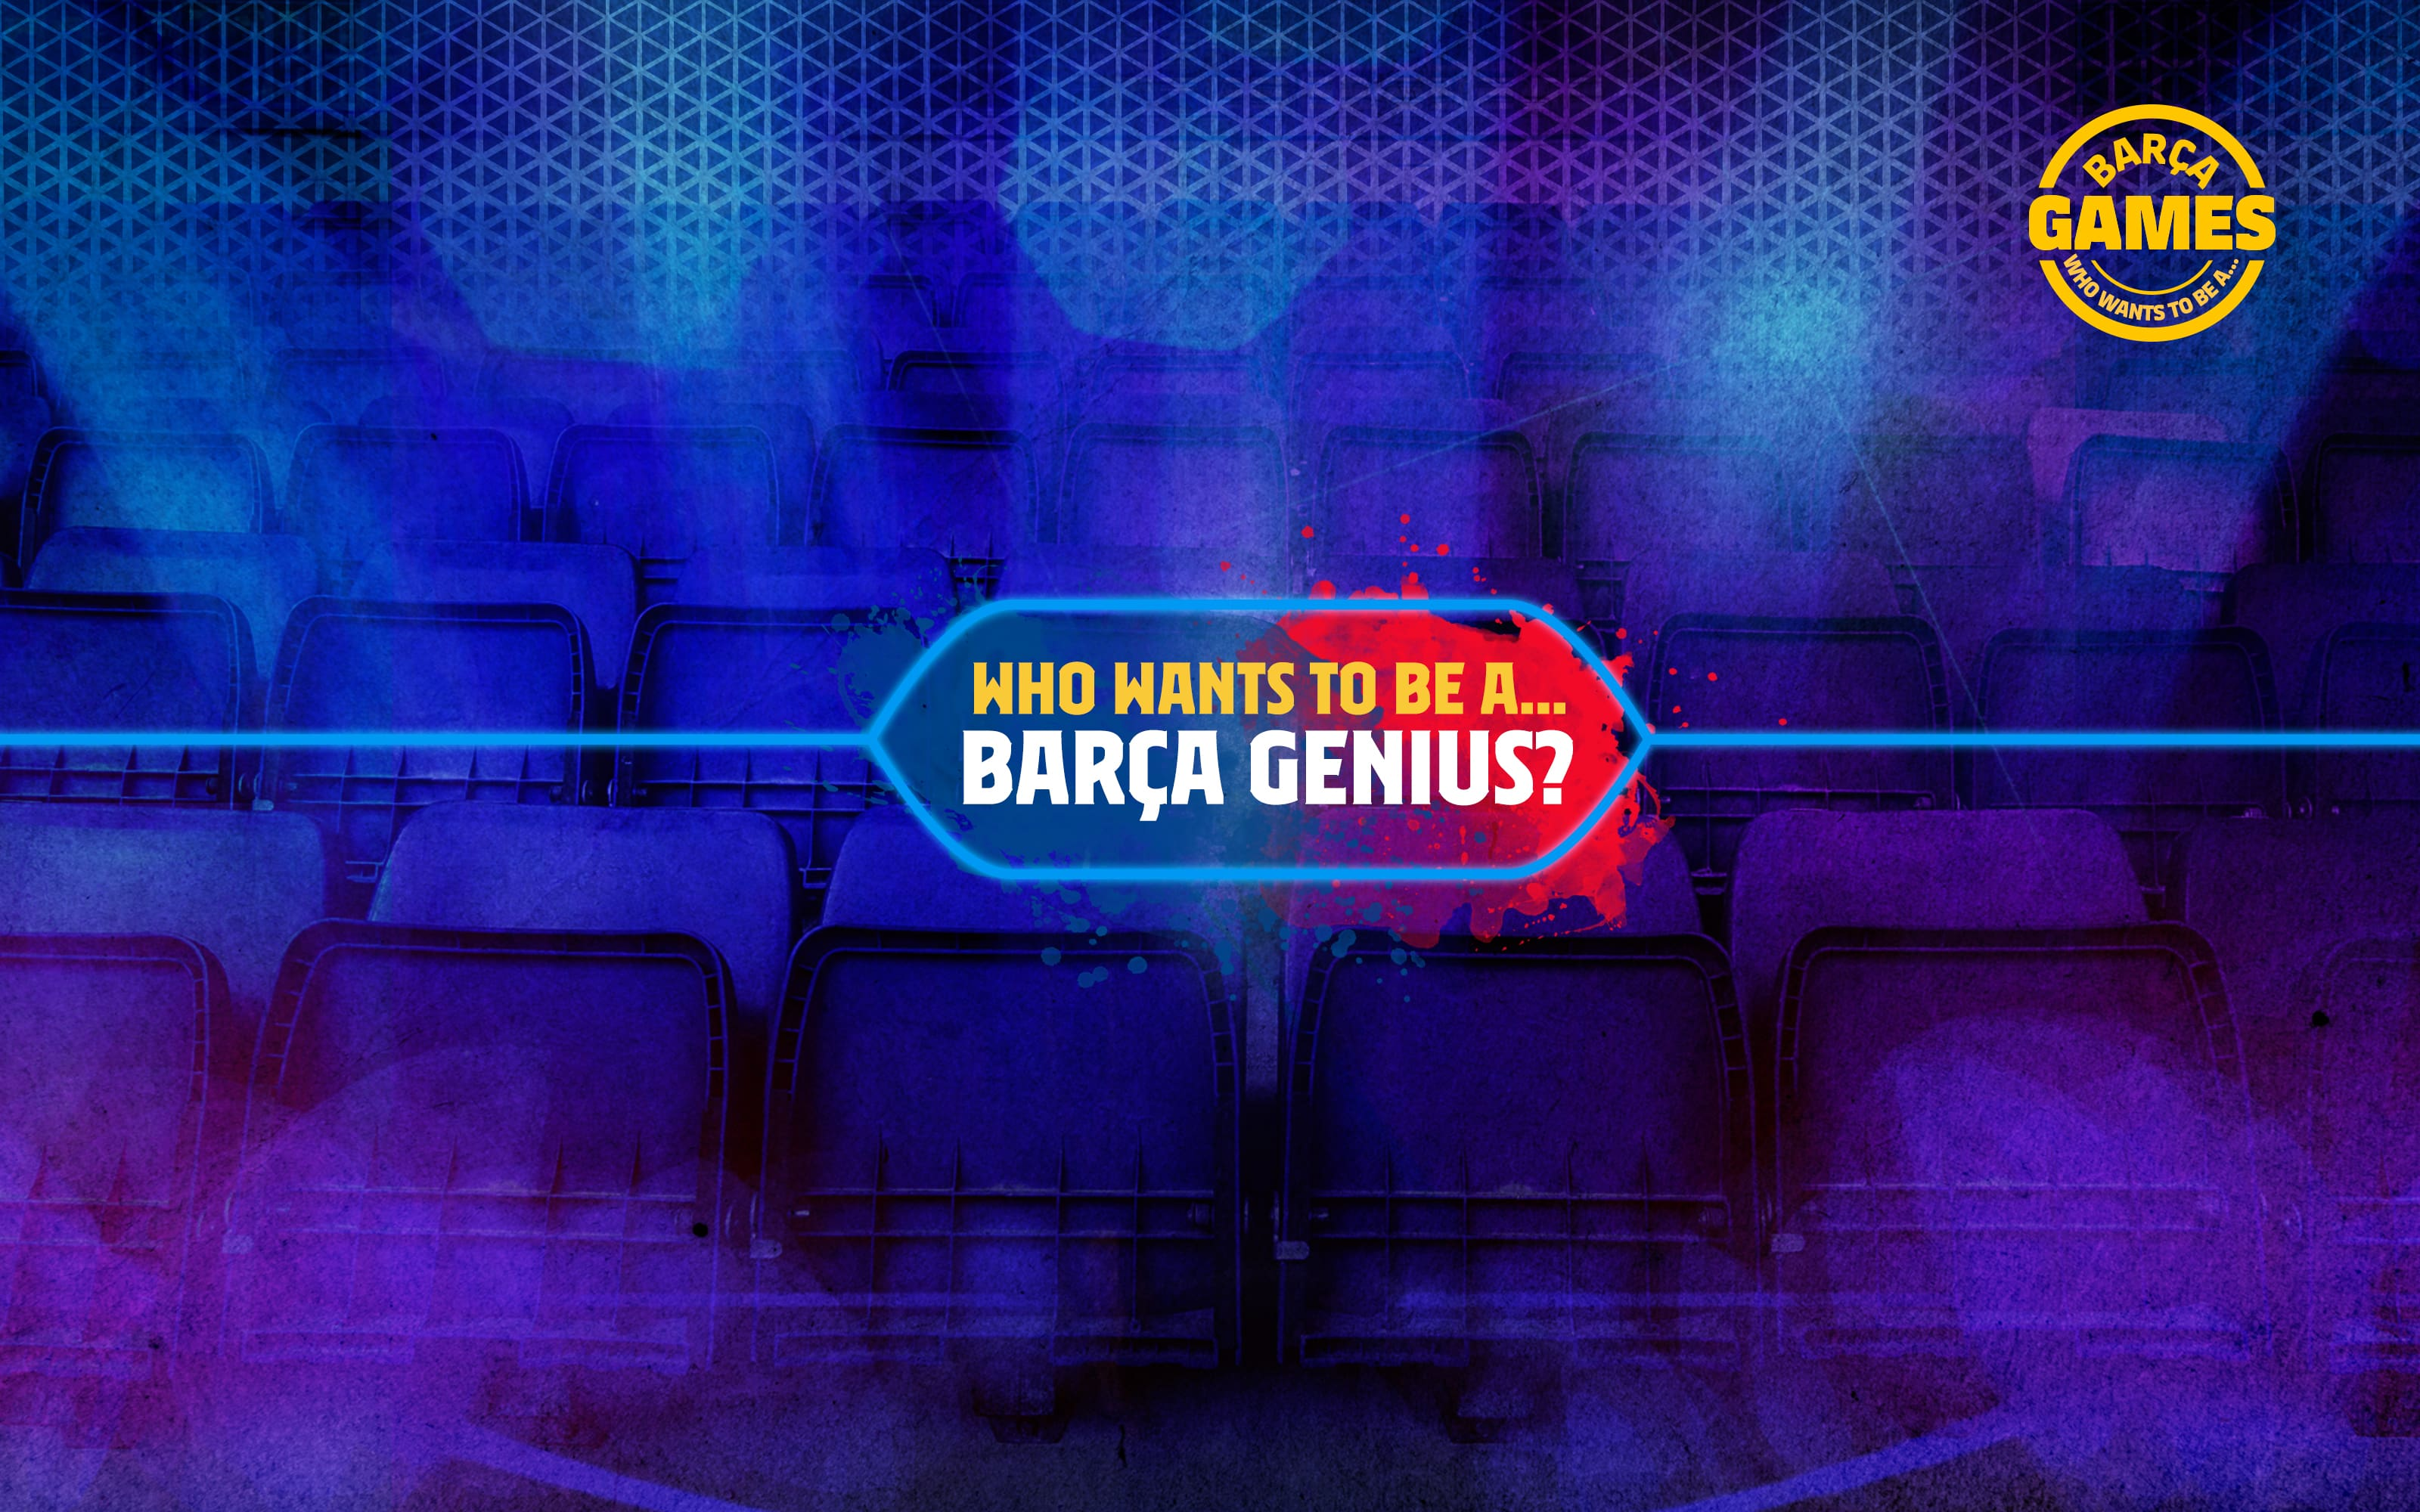 Who Wants To Be A Barca Genius